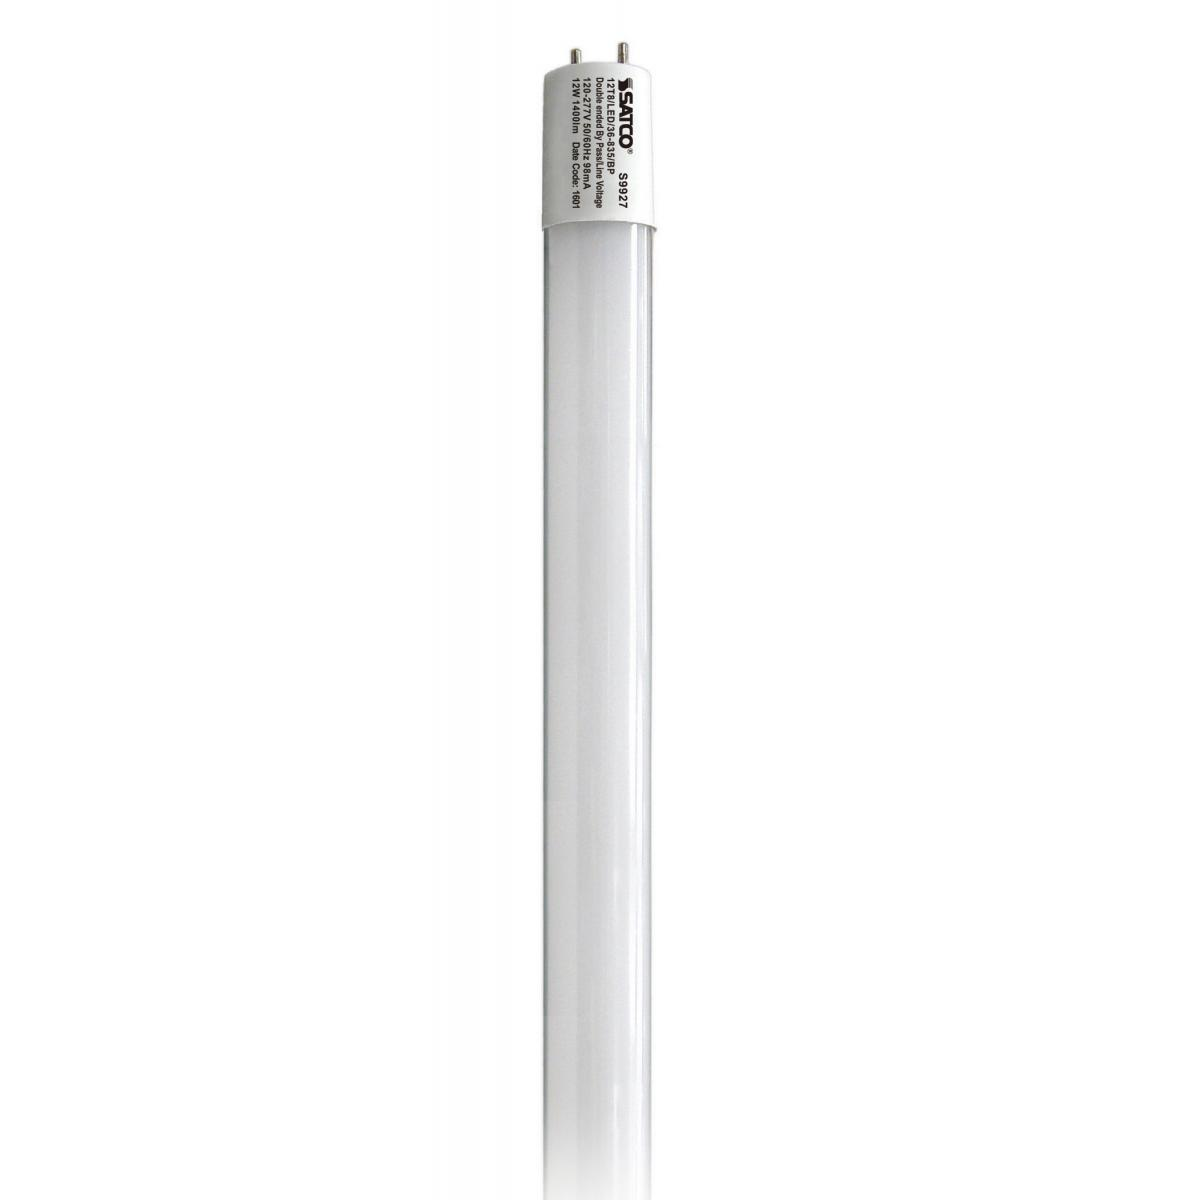 T8 LED replacement tube New York New Jersey